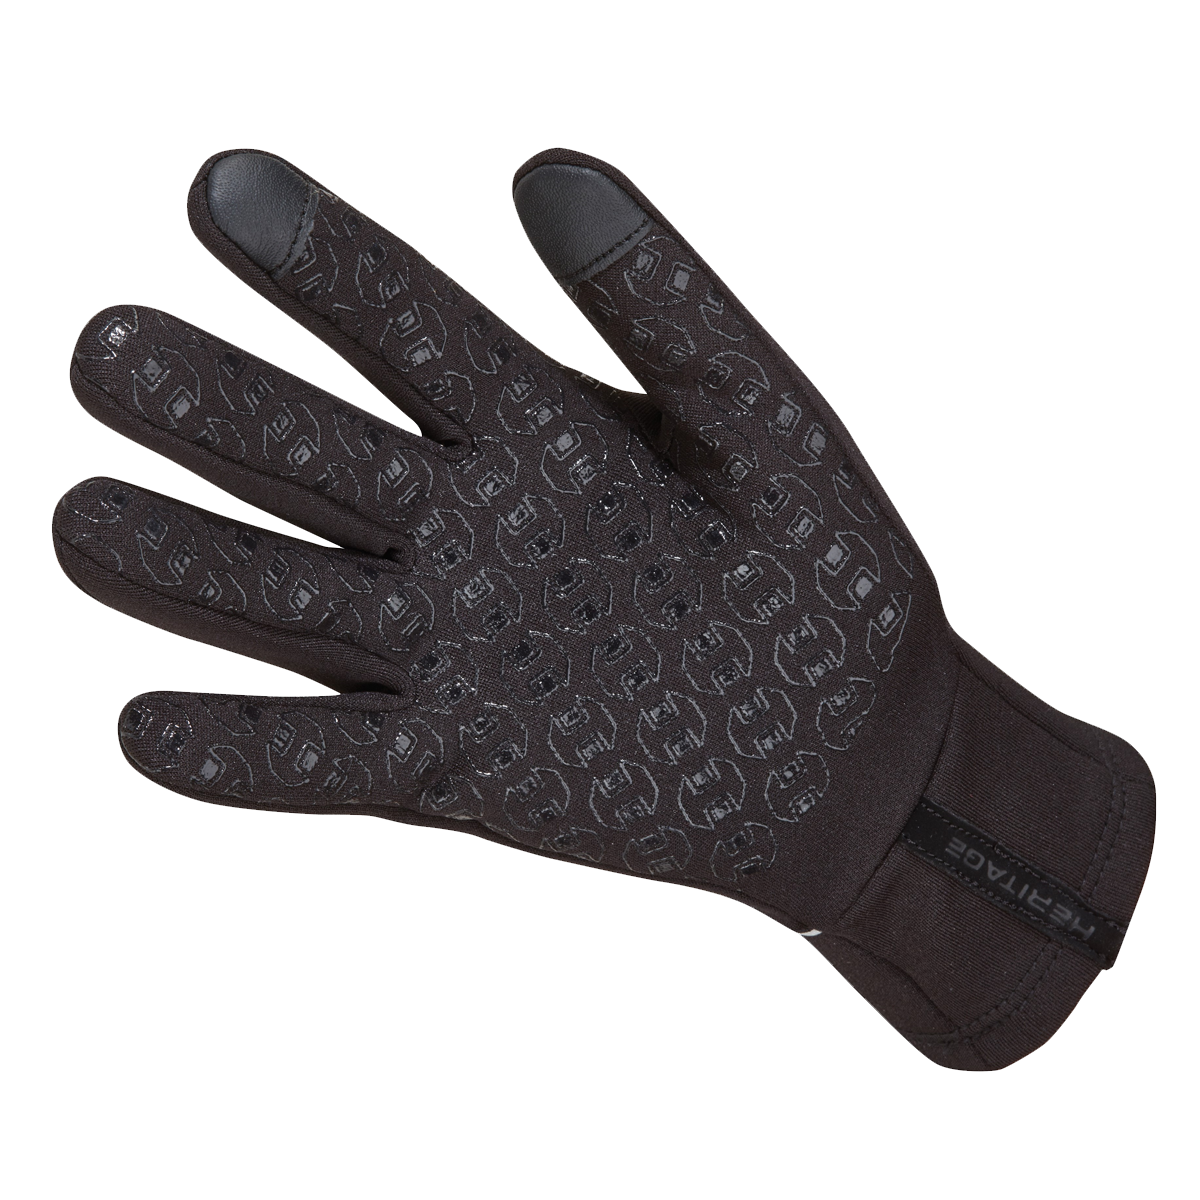 Heritage Polarstretch 2.0 Winter Glove